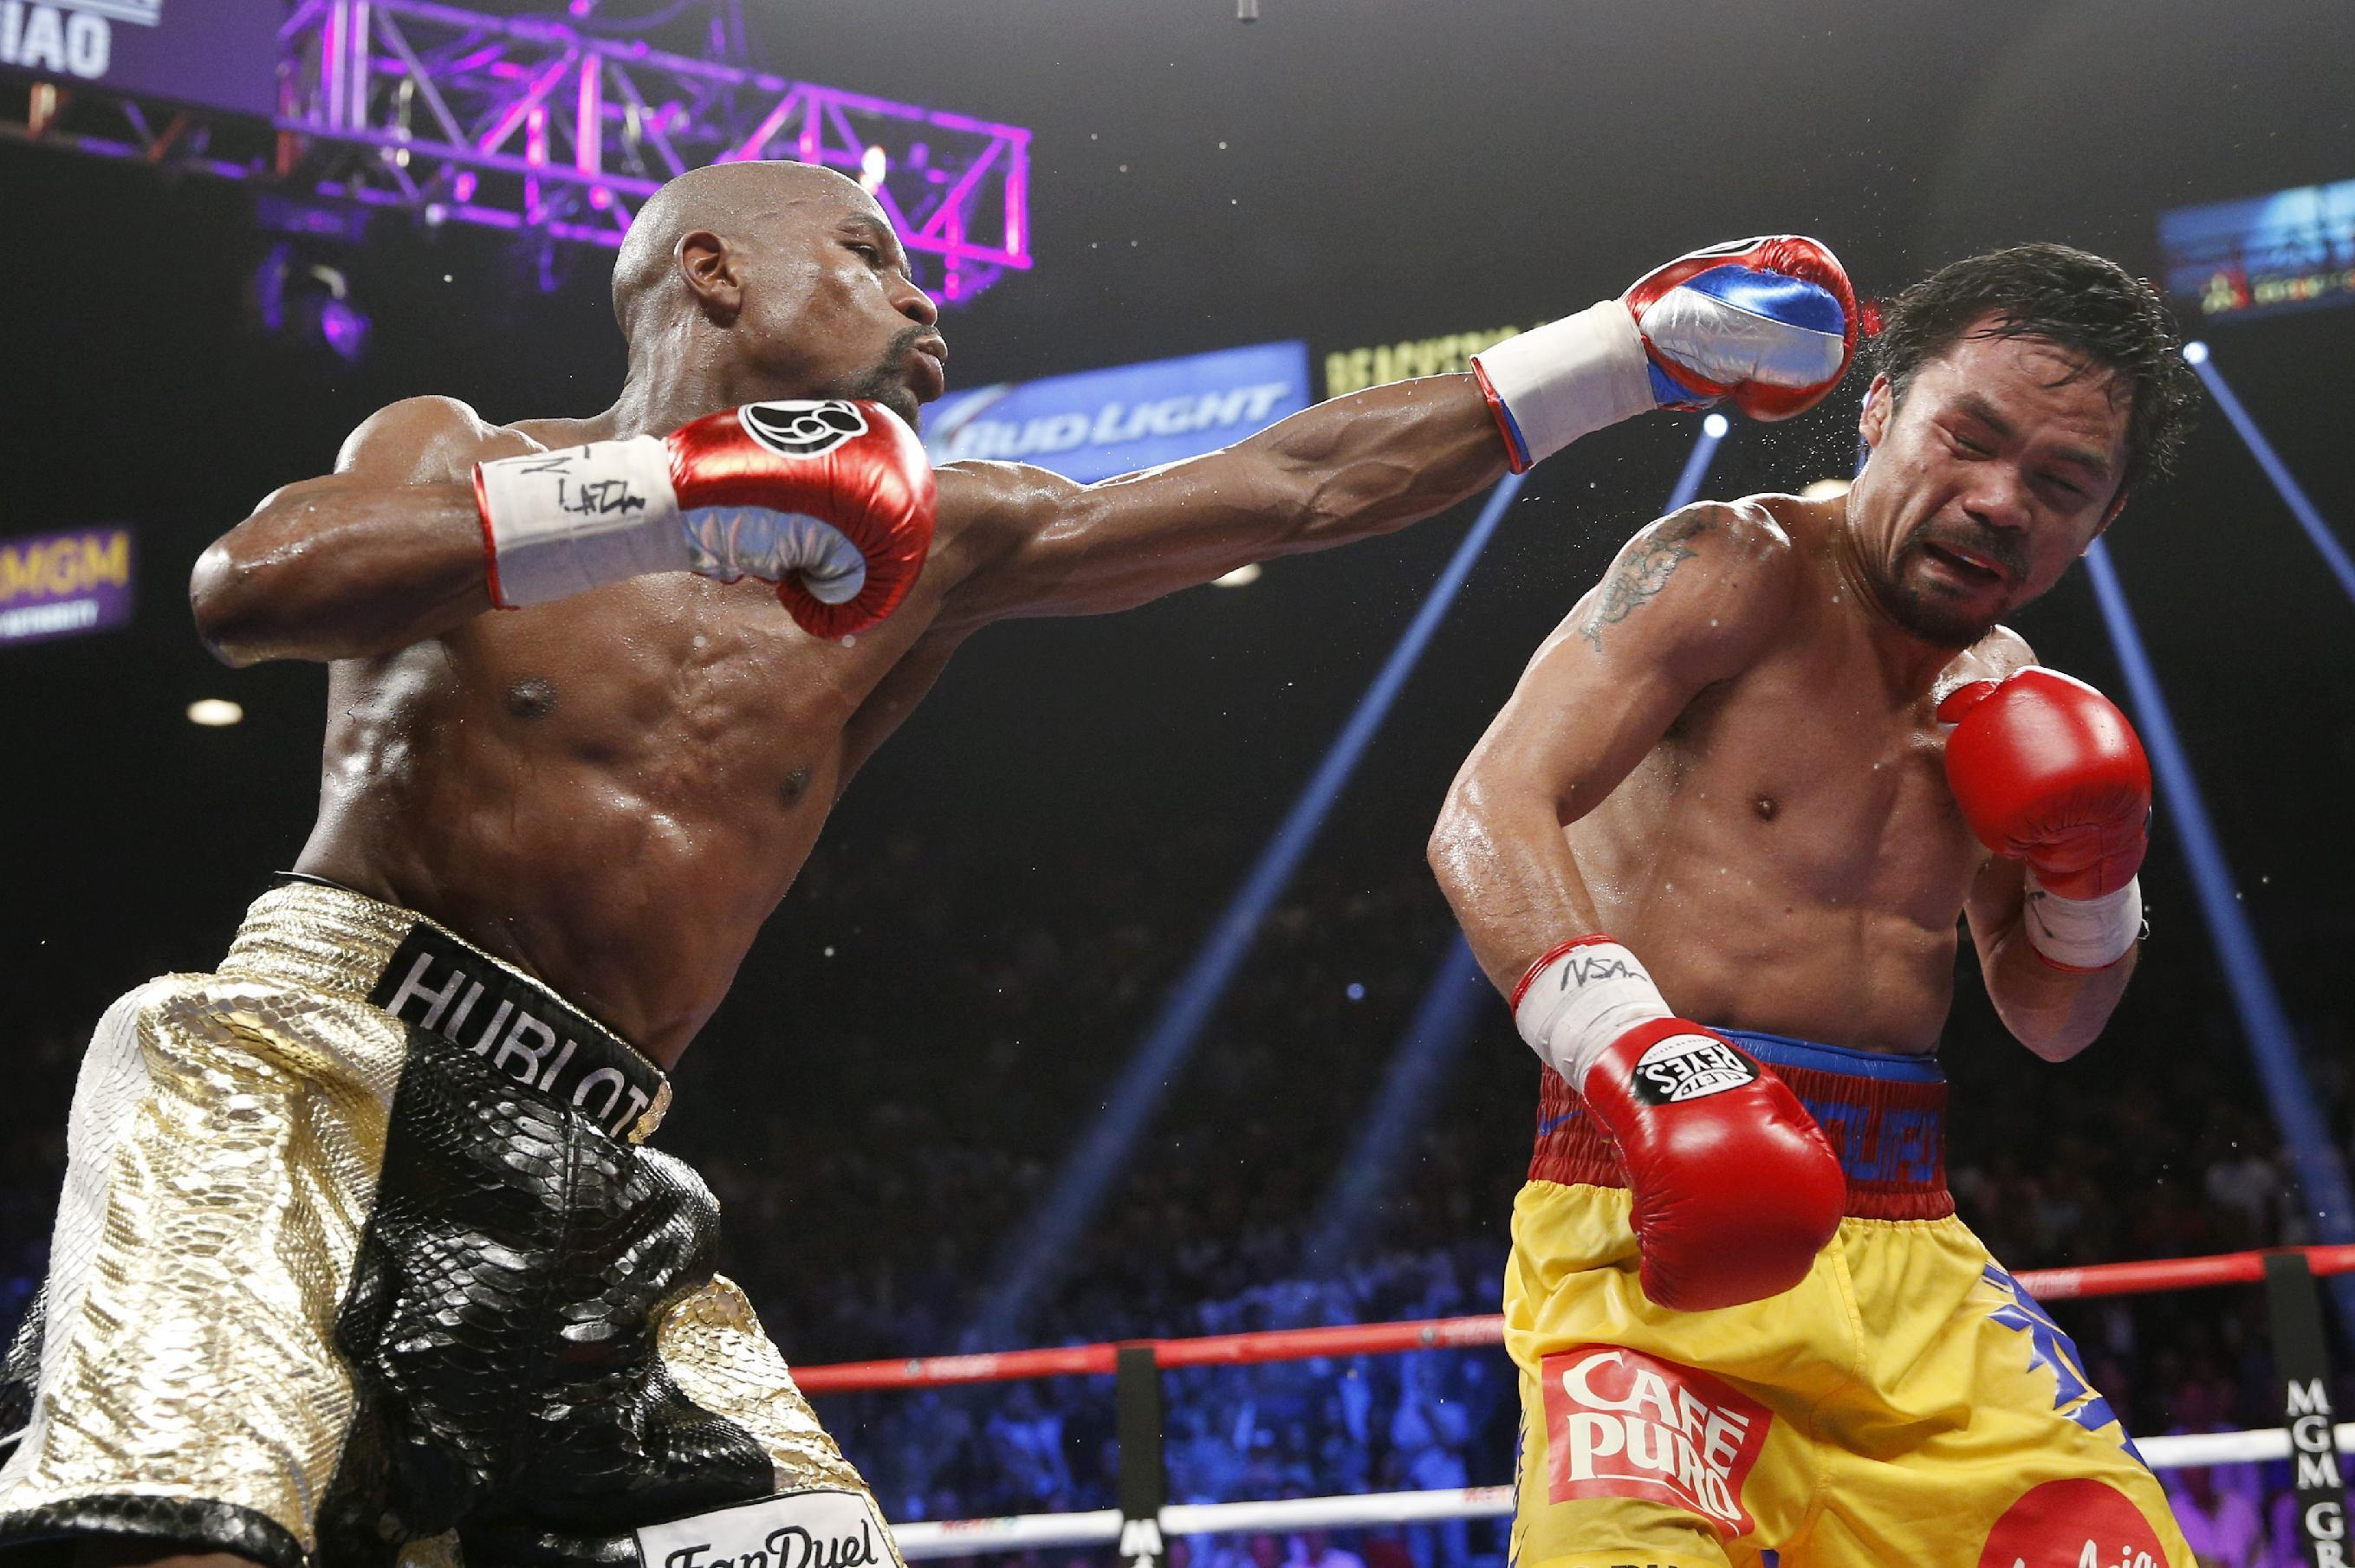 Sports world reacts to the Mayweather's win